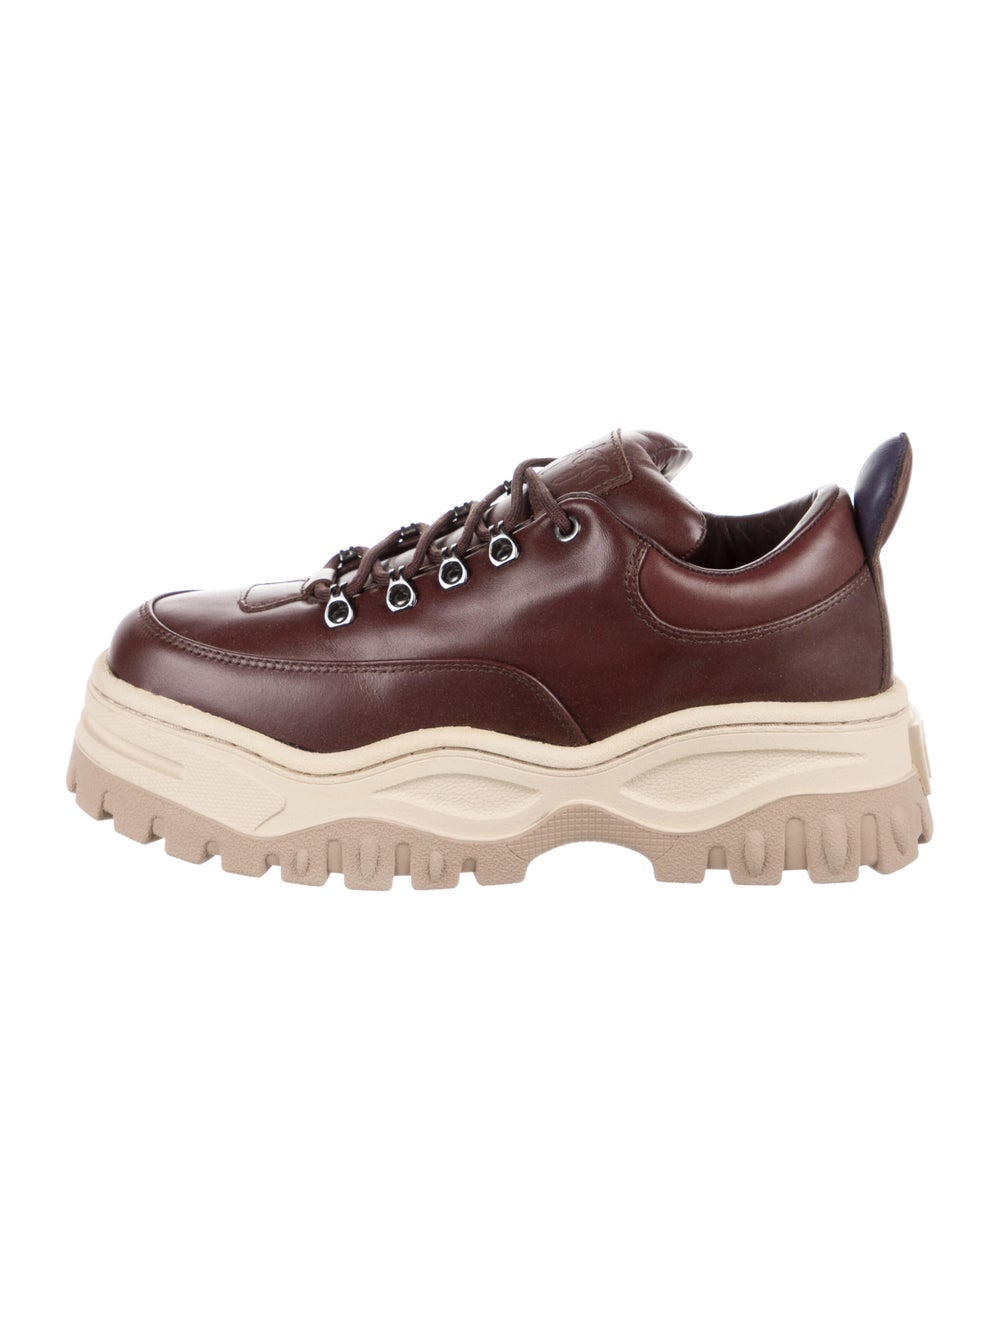 Eytys Leather Chunky Sneakers - image 1